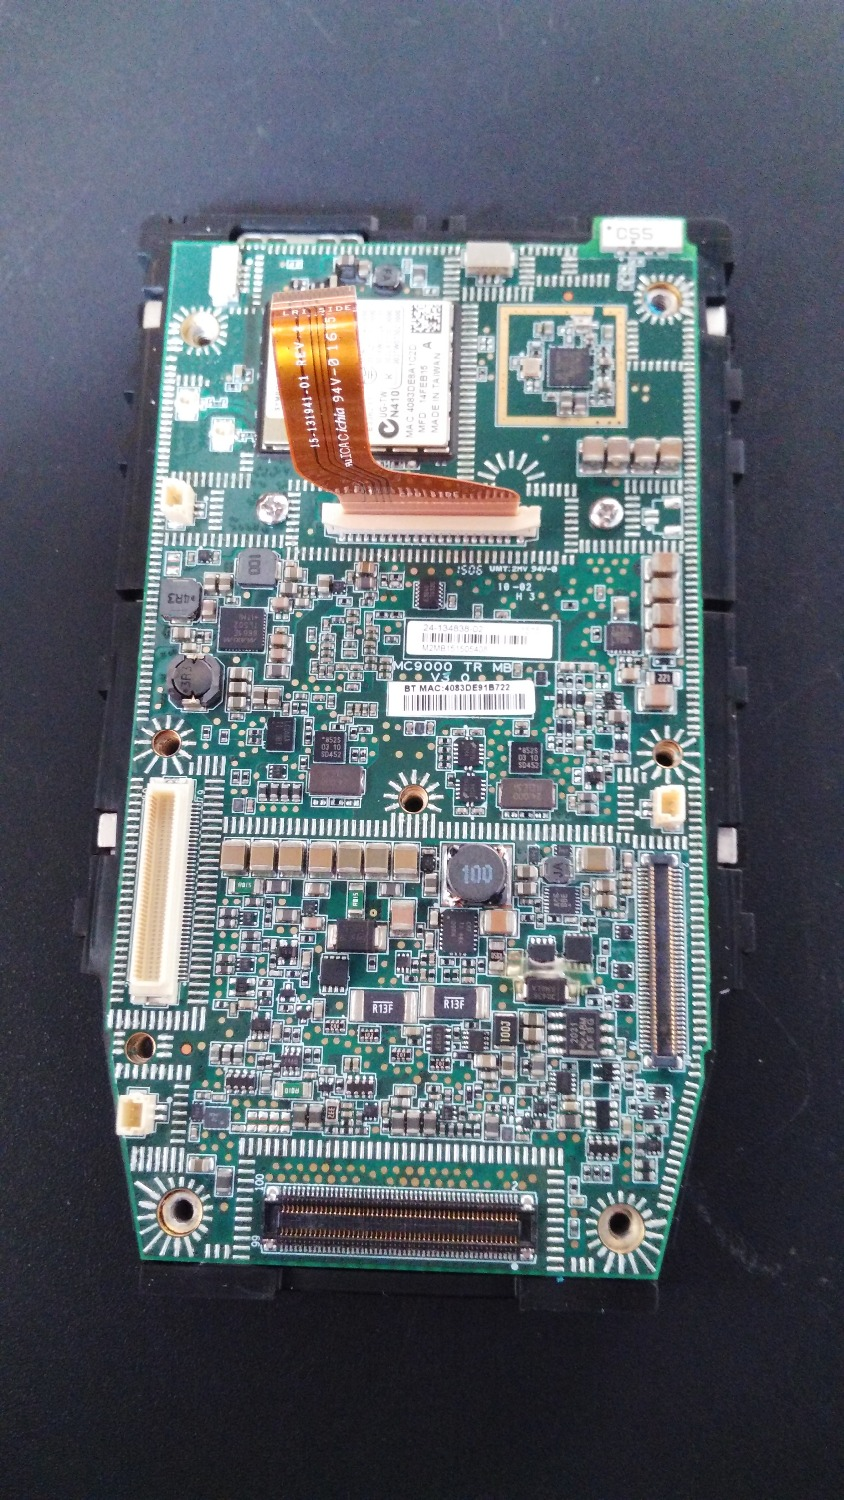 Abscl Mainboard Mettler Toledo Tiger 844 high quality mother board 8442-X6XX PRO main board 3660,72203491 electronic scale part; цены онлайн